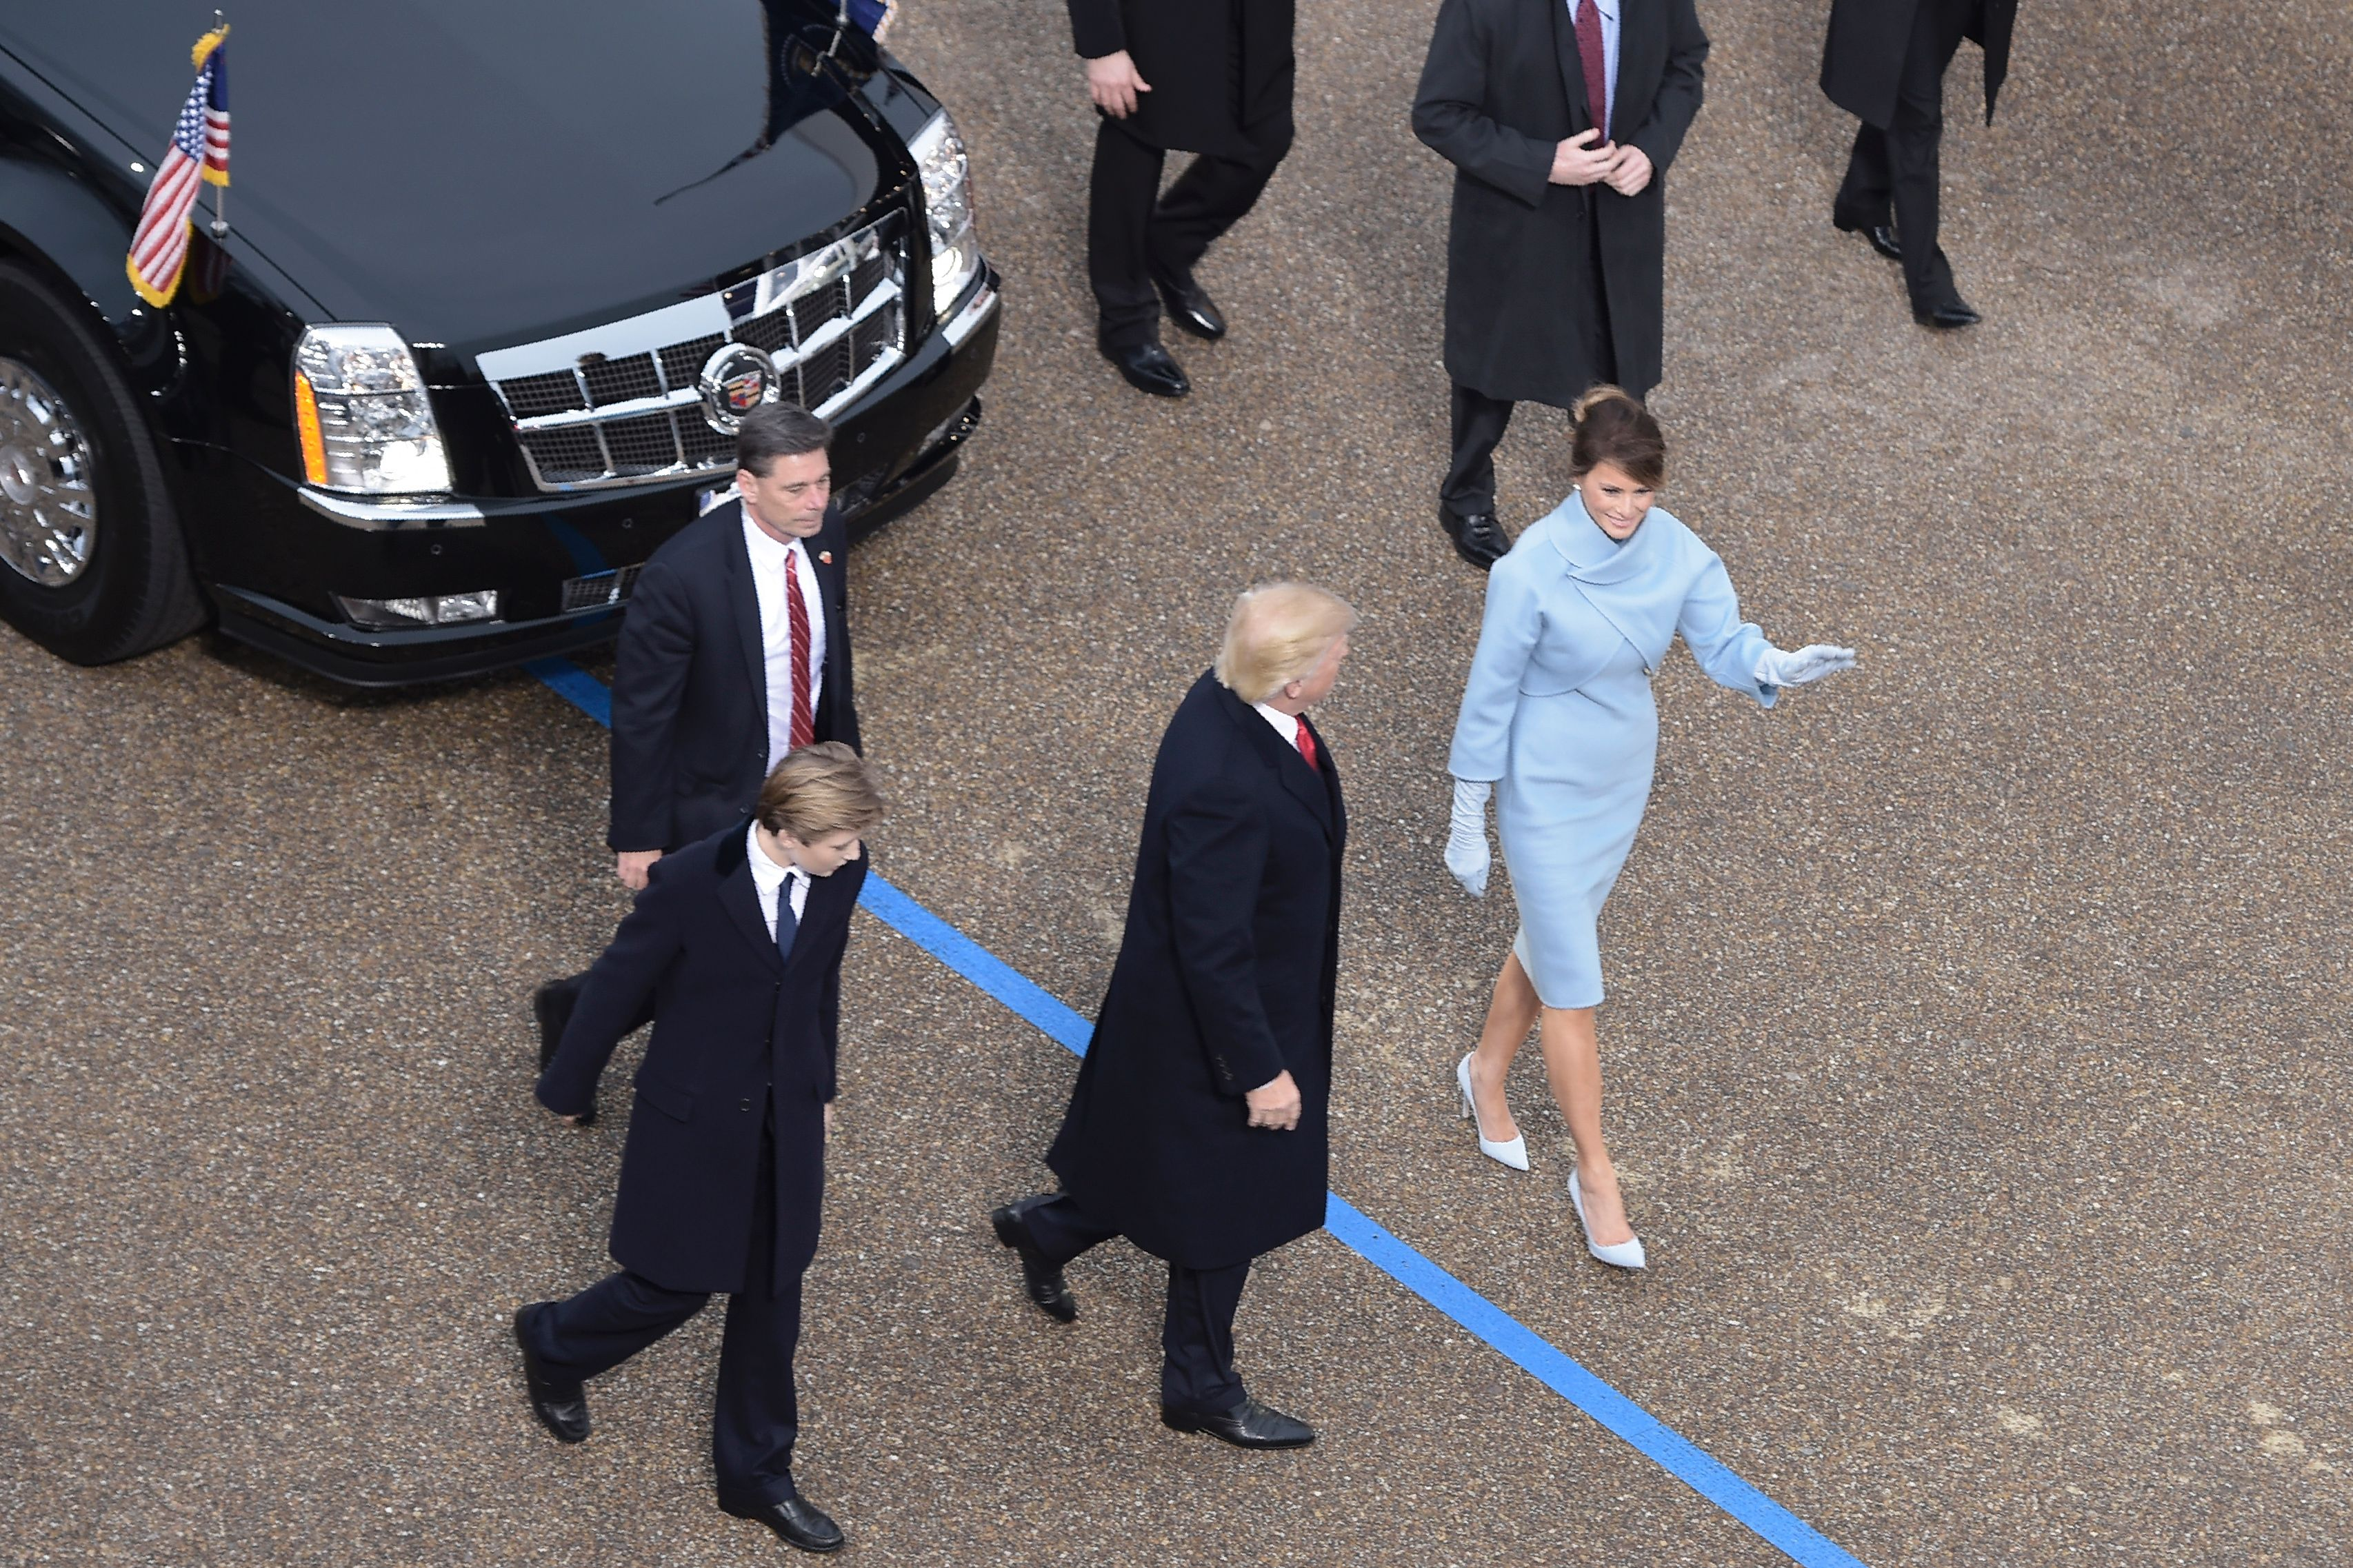 us-politics-INAUGURATION-PARADE-10 President Donald Trump walks out of the car with his son Barron and wife Melania surrounded by Secret Service officers at the White House as the presidential inaugural parade winds through the nation's capital Friday afternoon.